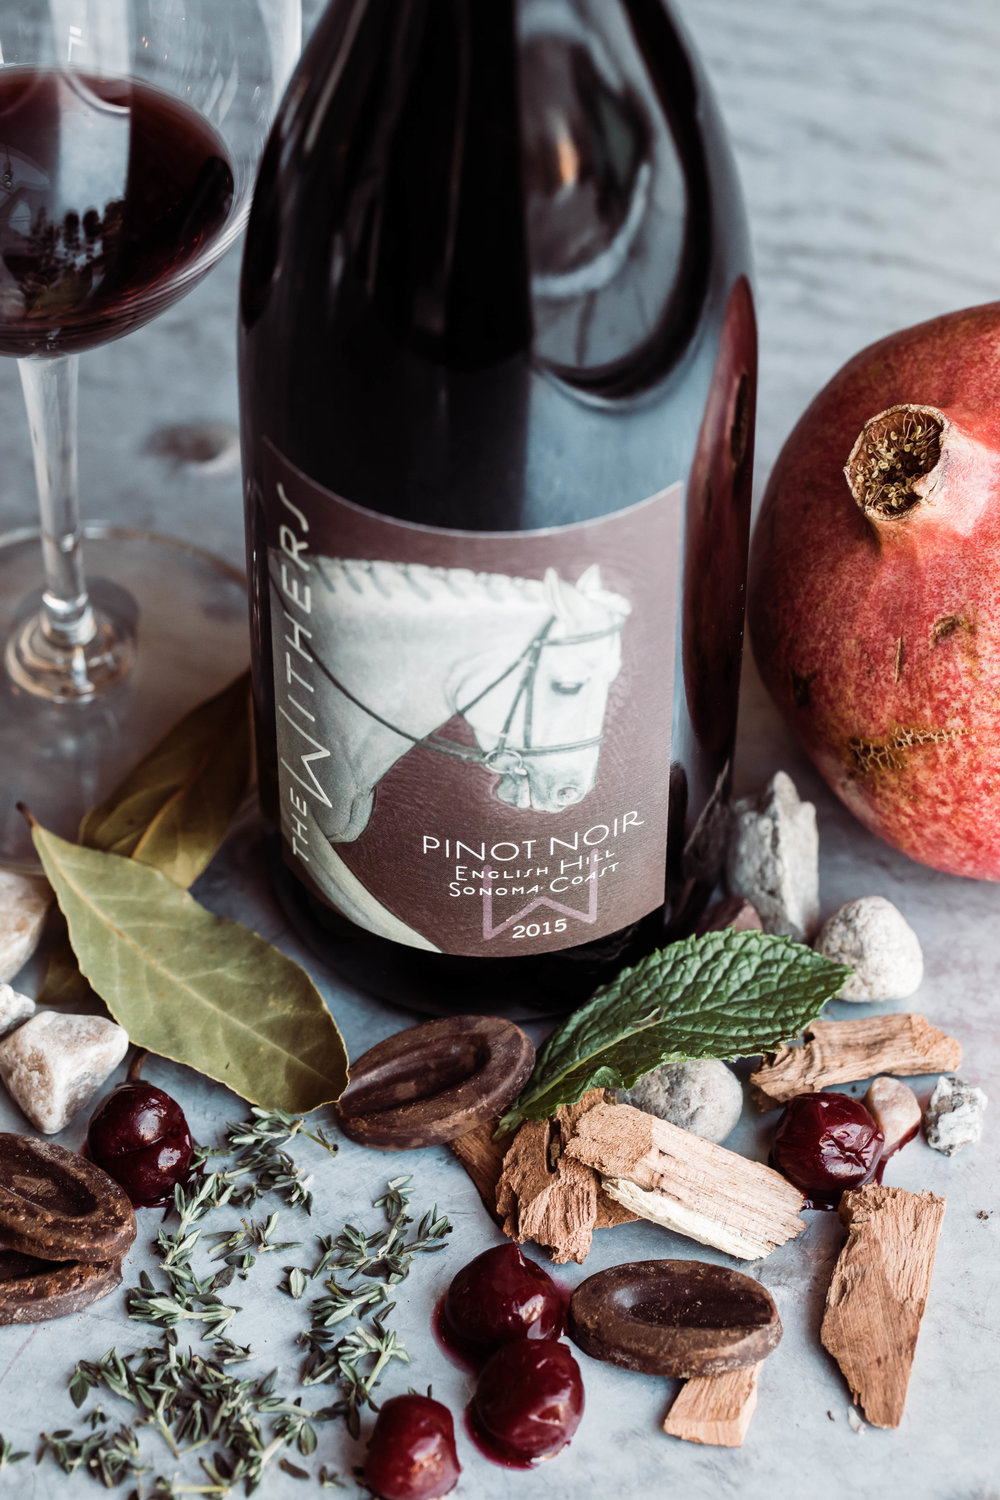 2015 English Hill Pinot Noir  Notes of chocolate, dark cherries, herbs, pomegranate, oak